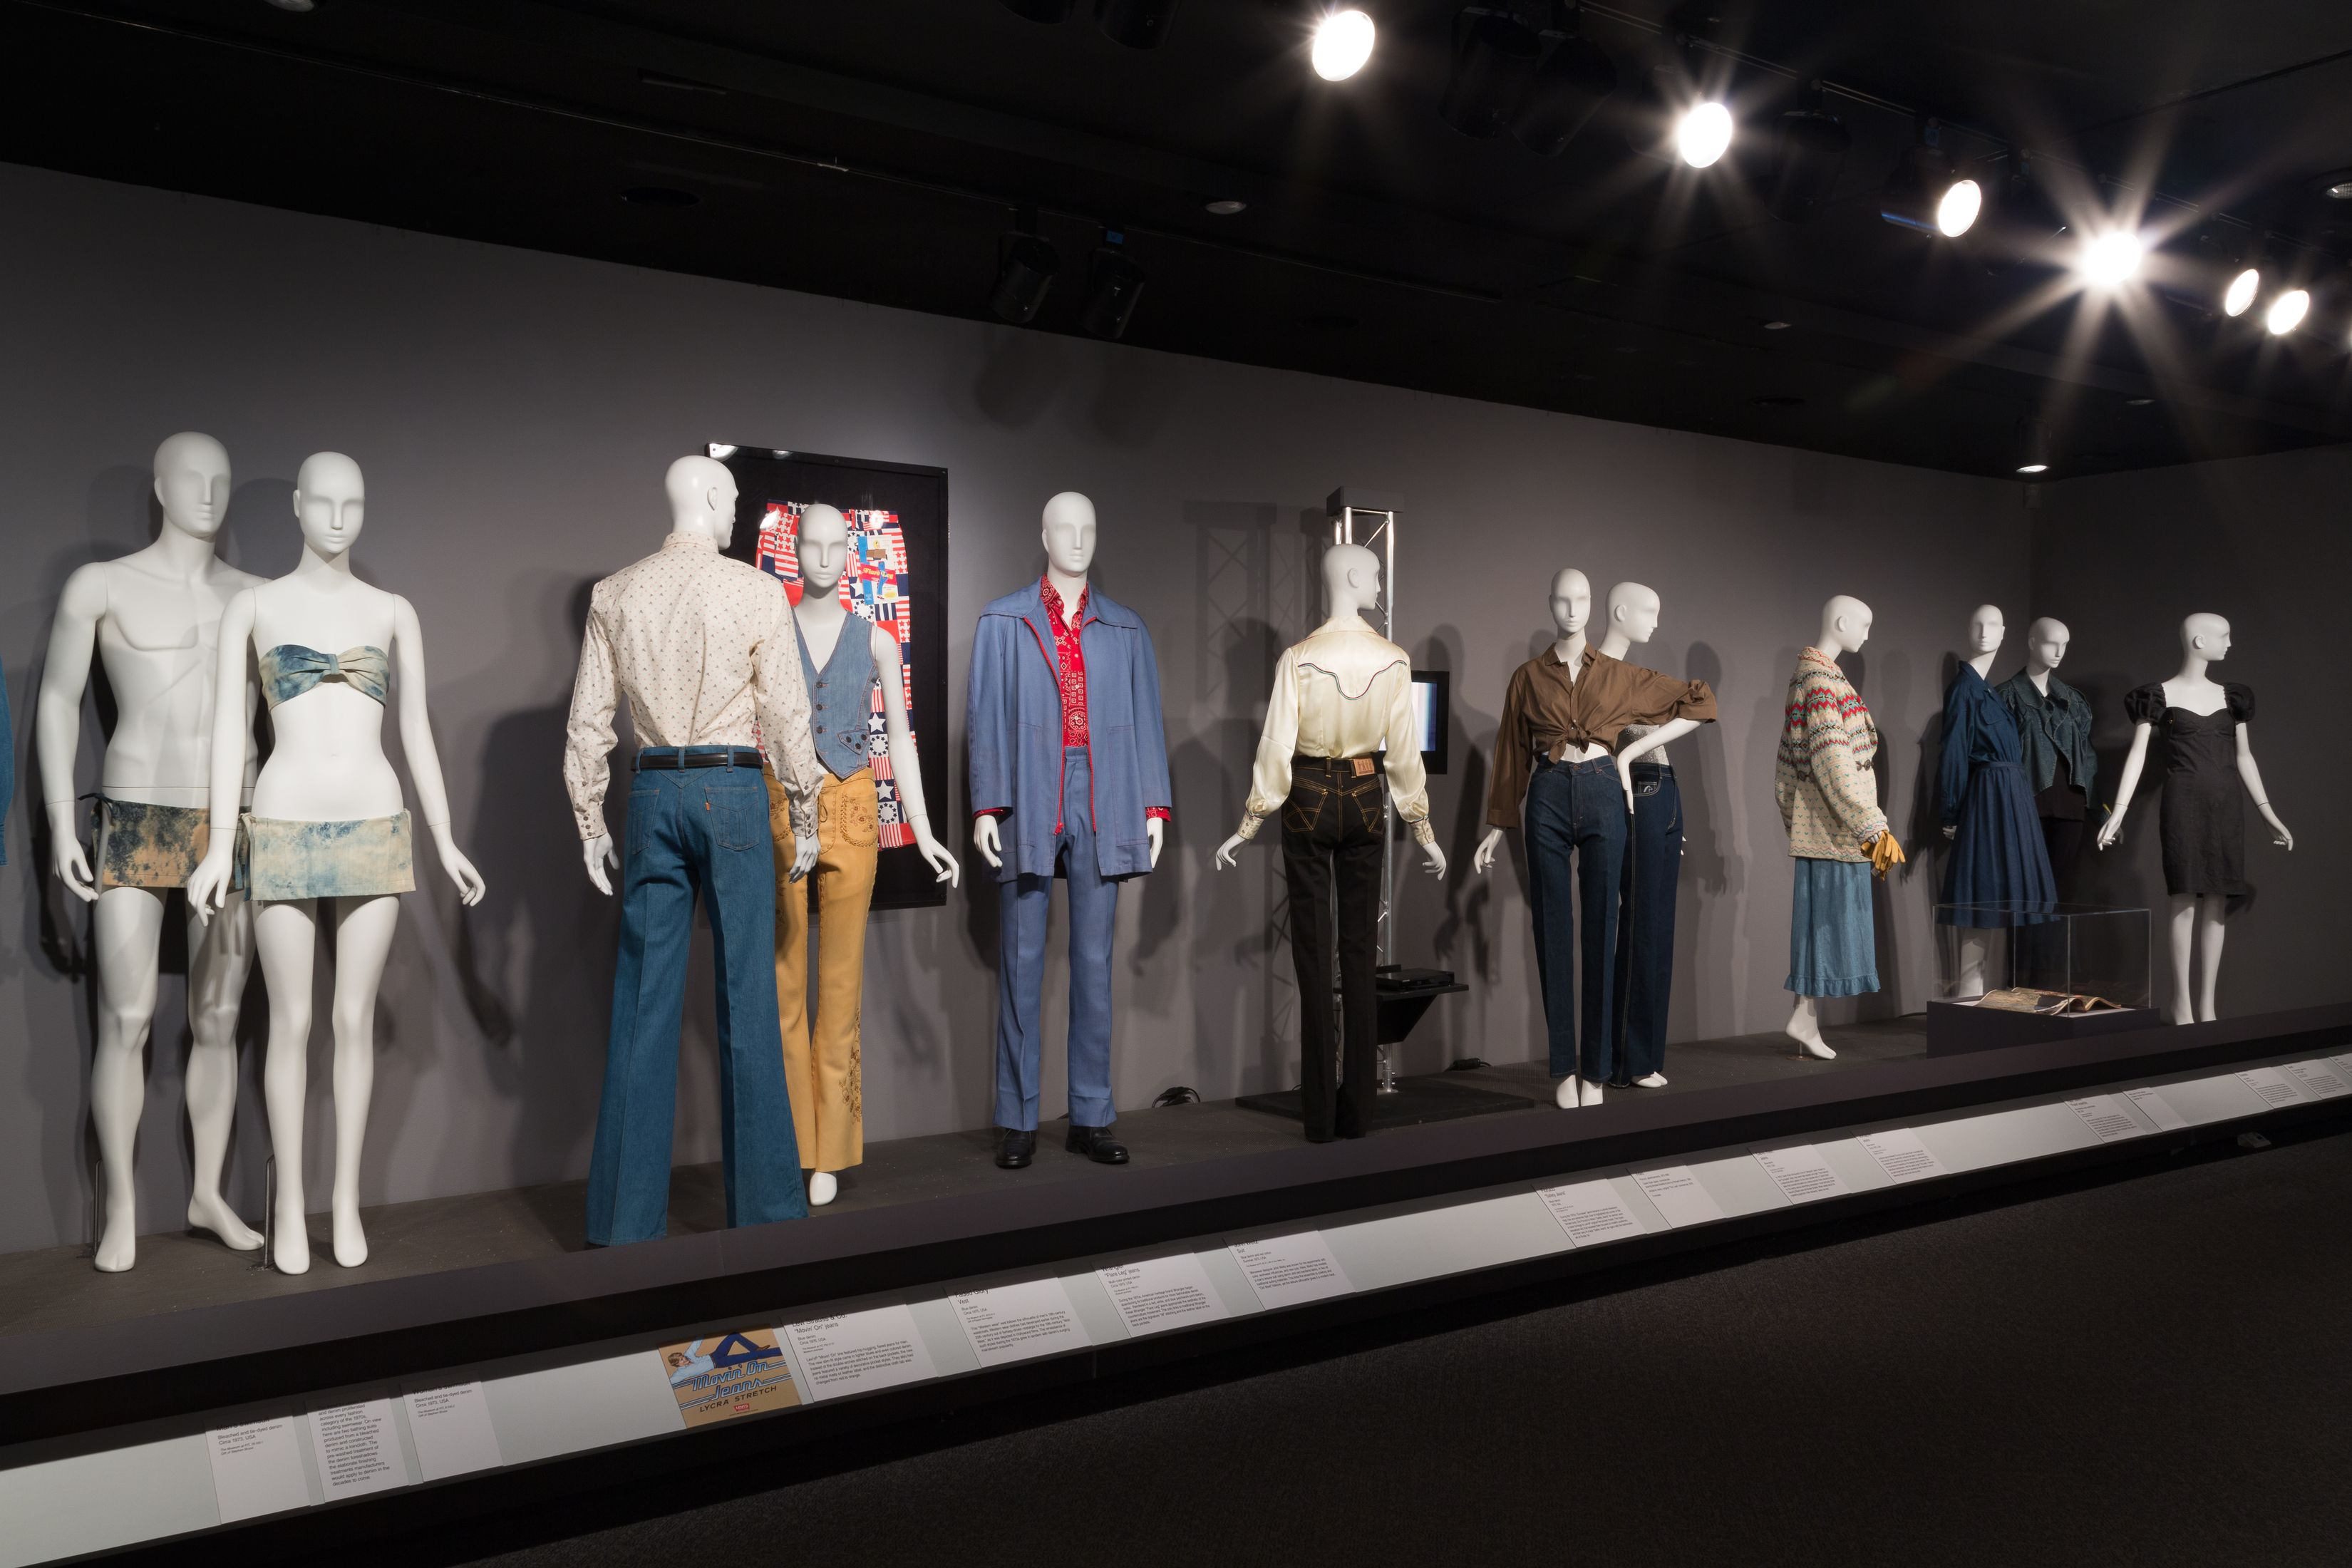 Installation view of Denim: Fashion's Frontier. Image courtesy of The Museum at FIT